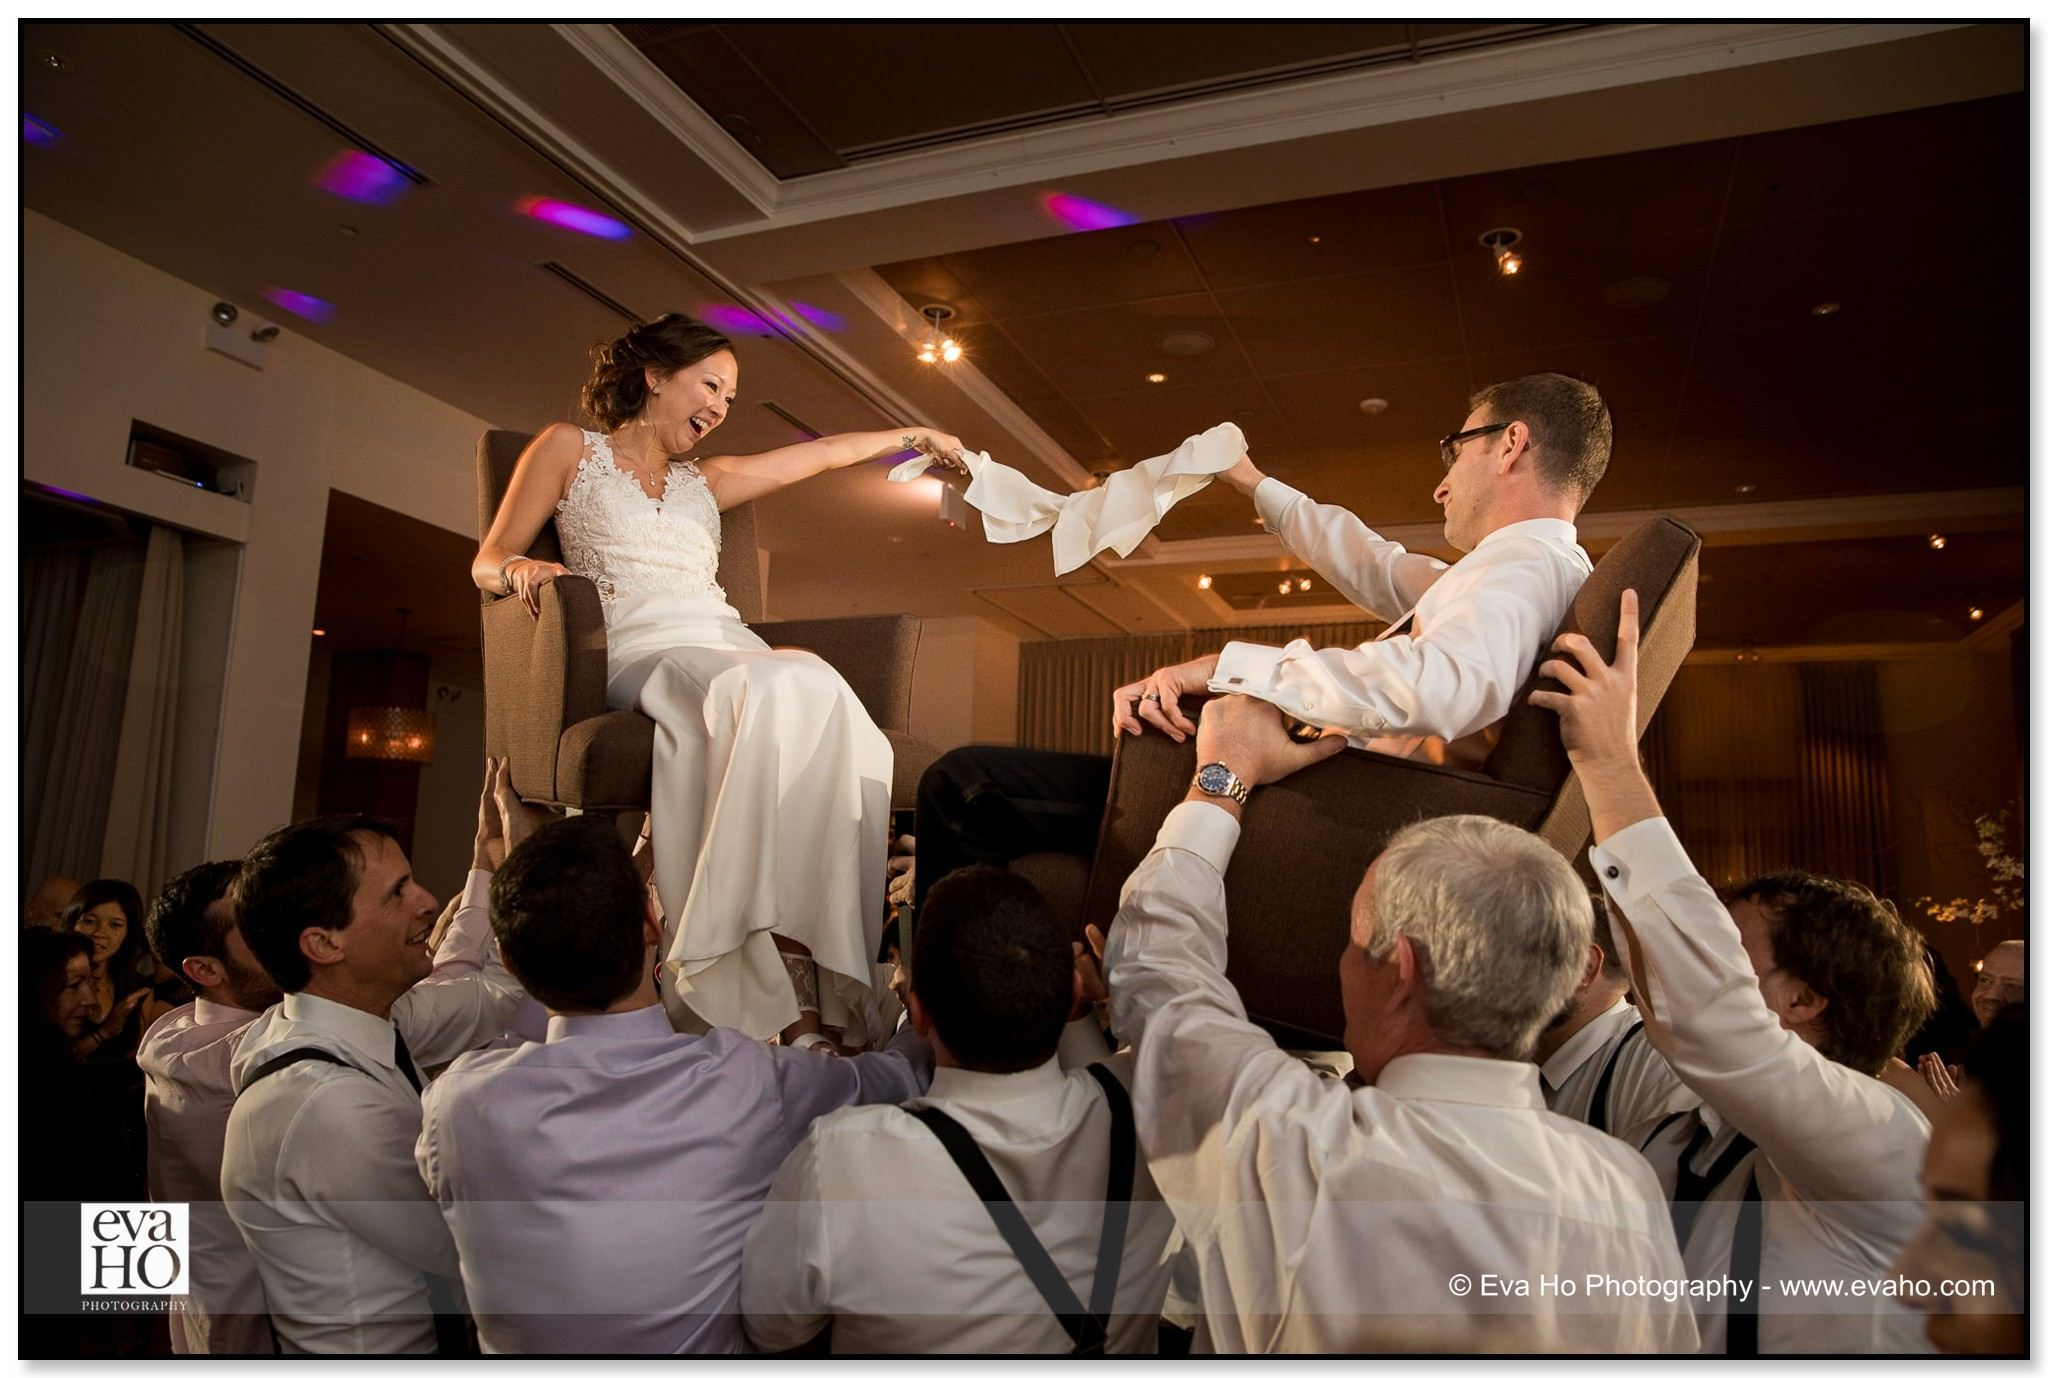 My Favorite Jewish Wedding Tradition Is Probably This Fantastically Fun Hora Dance Where The Gues Jewish Wedding Traditions Chicago Wedding Event Photographer